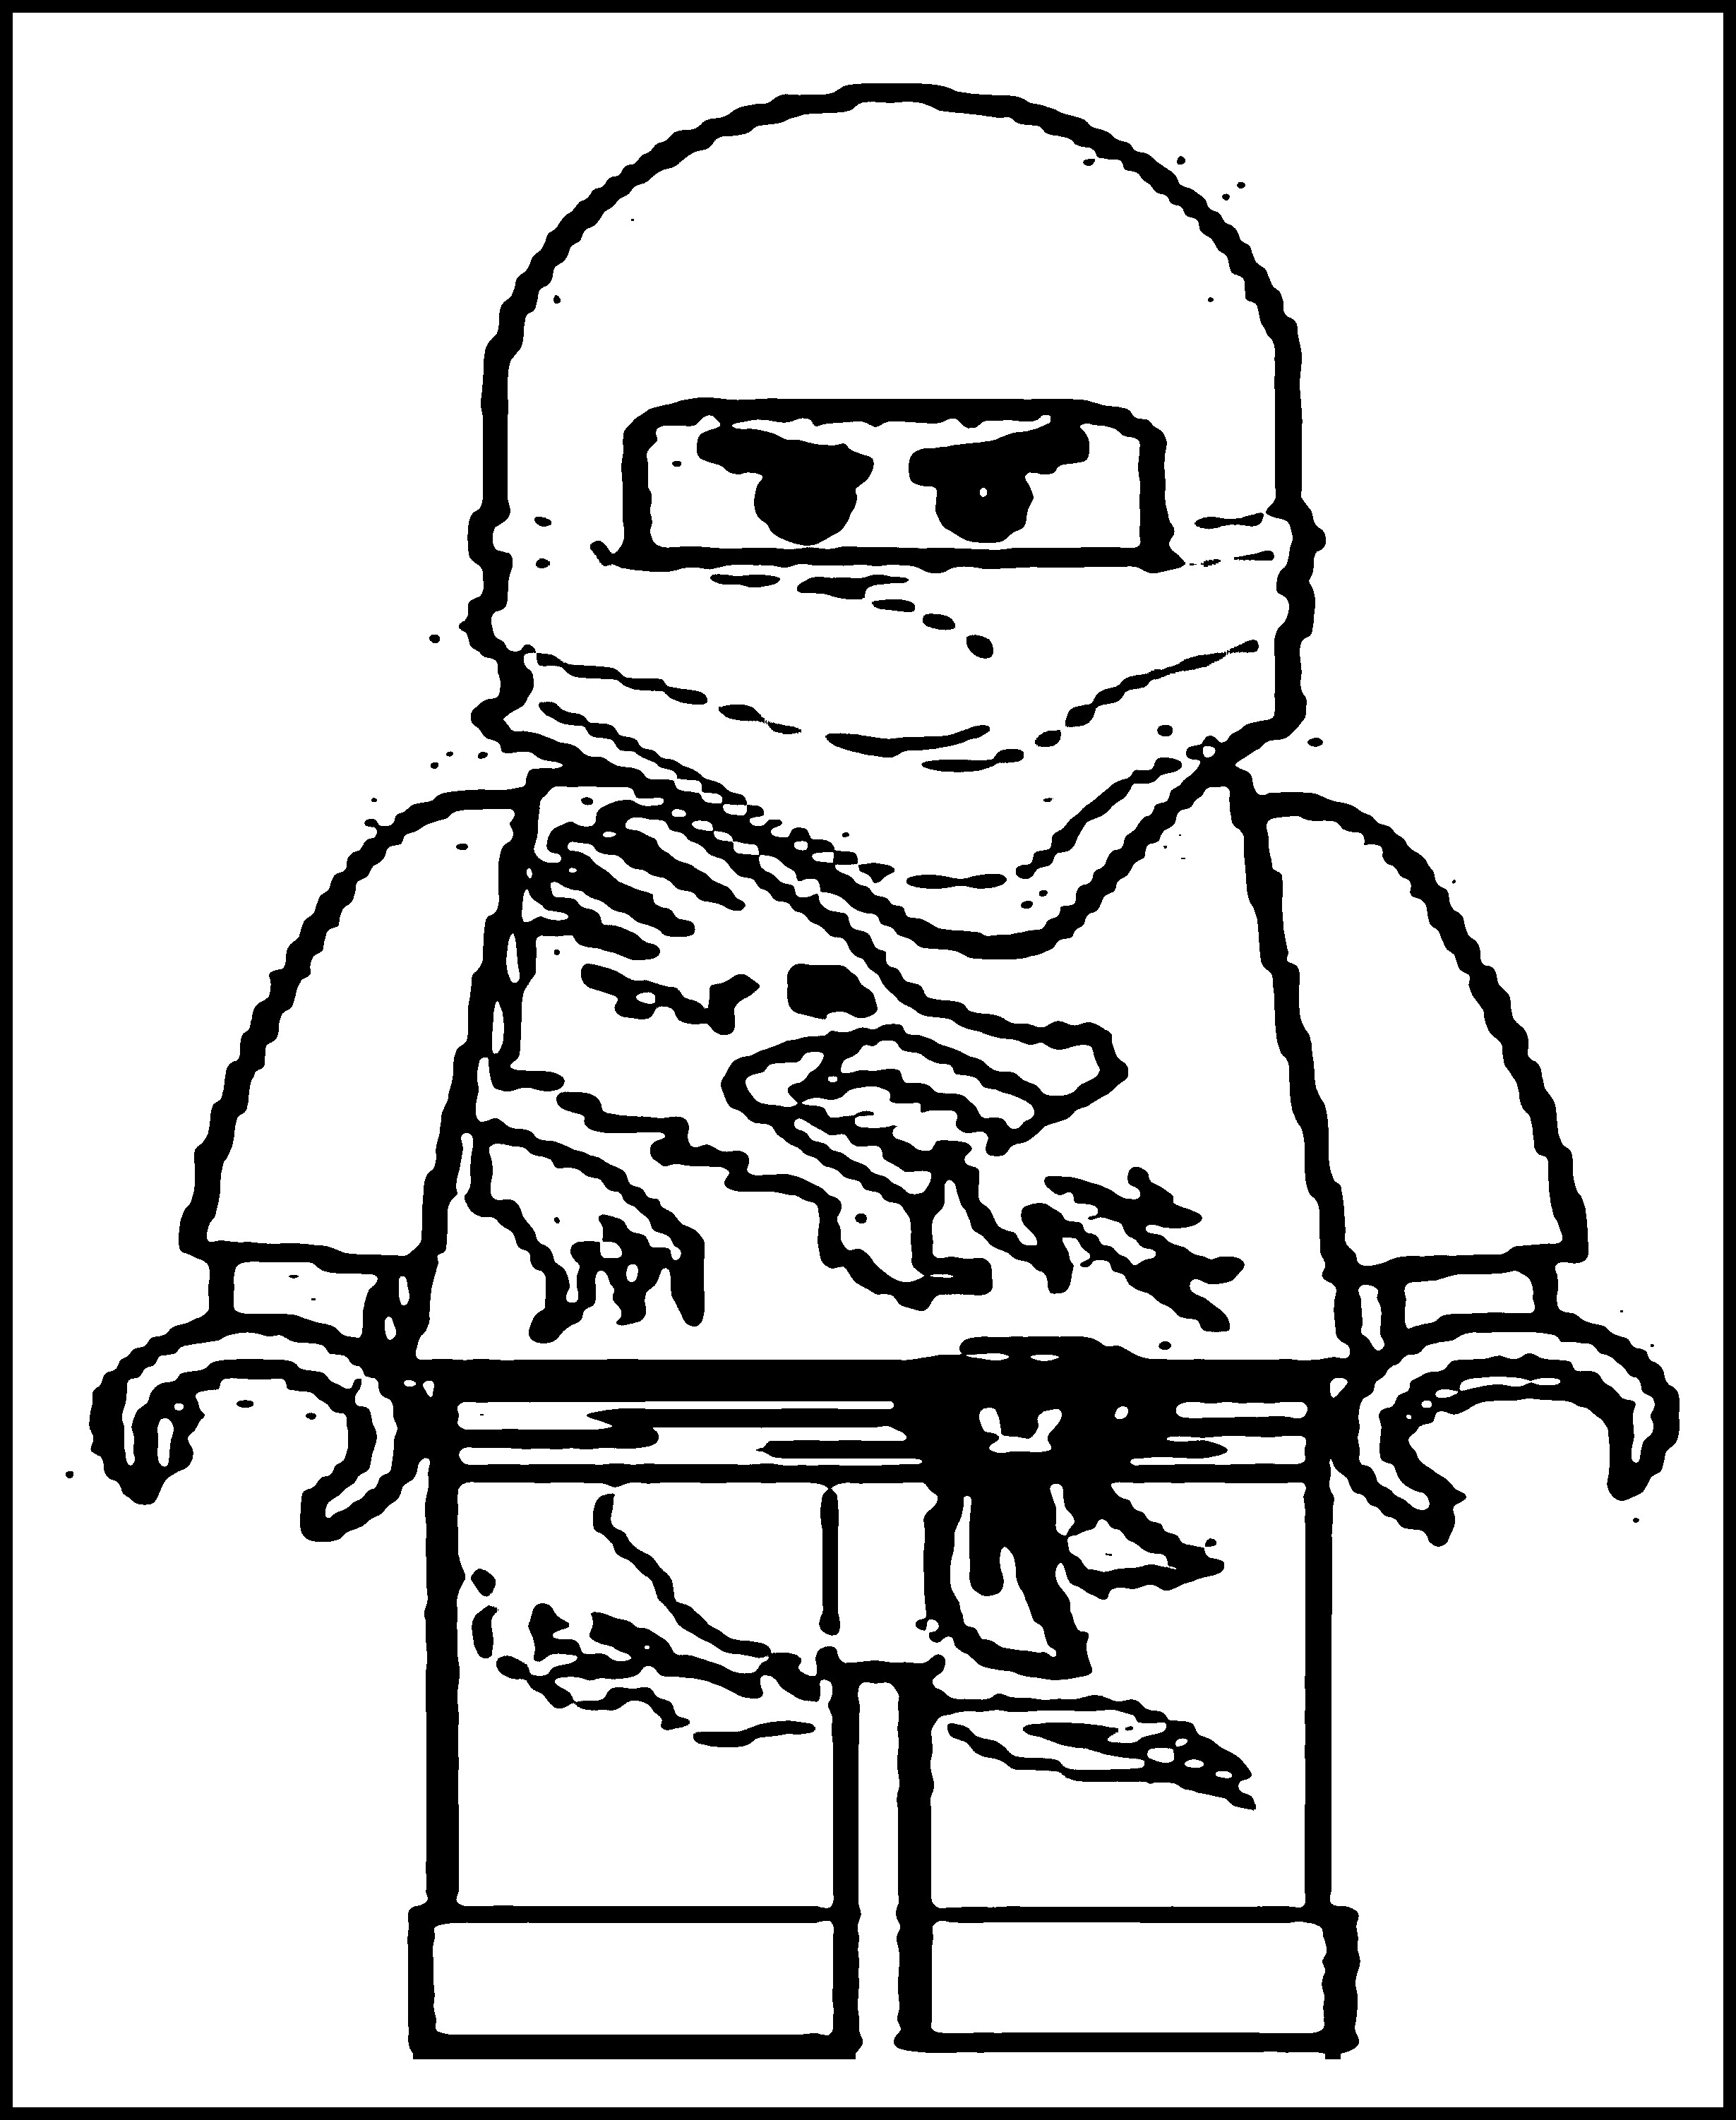 Lego Ninjago Snake Coloring Pages